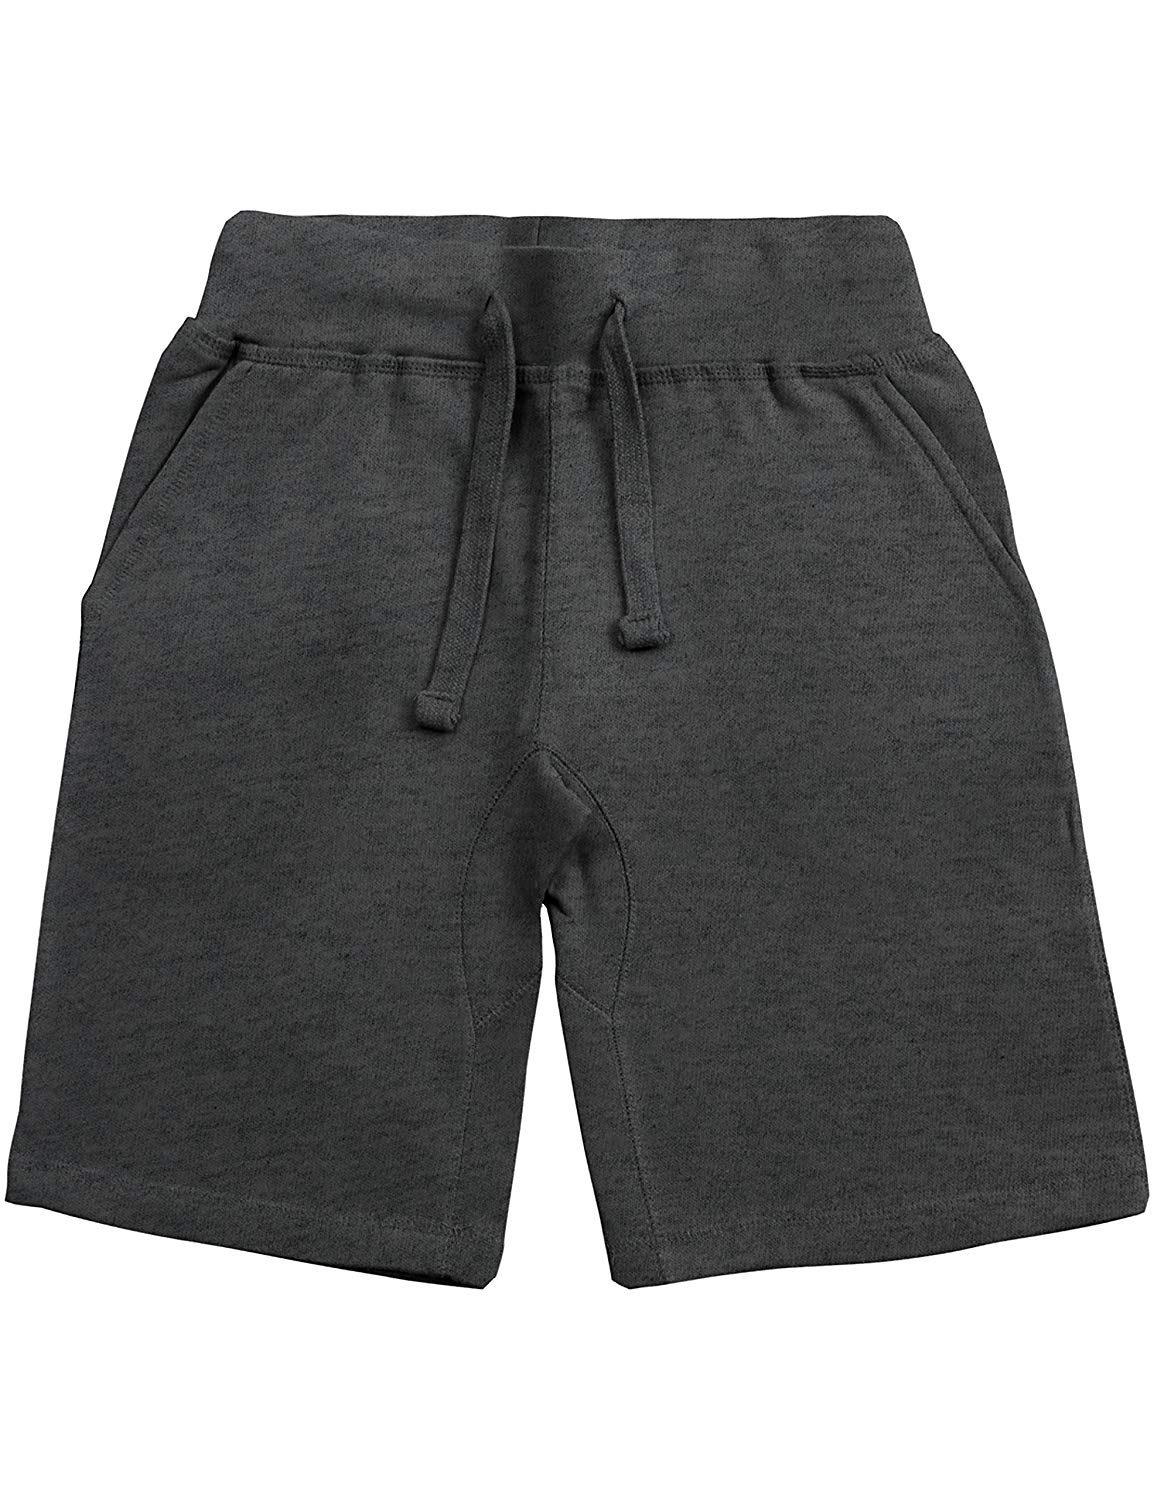 Ma Croix Mens Sweat Shorts Jogger Classic Fit Drawstring Casual Fleece Elastic Cotton Gym Athletic Shorts